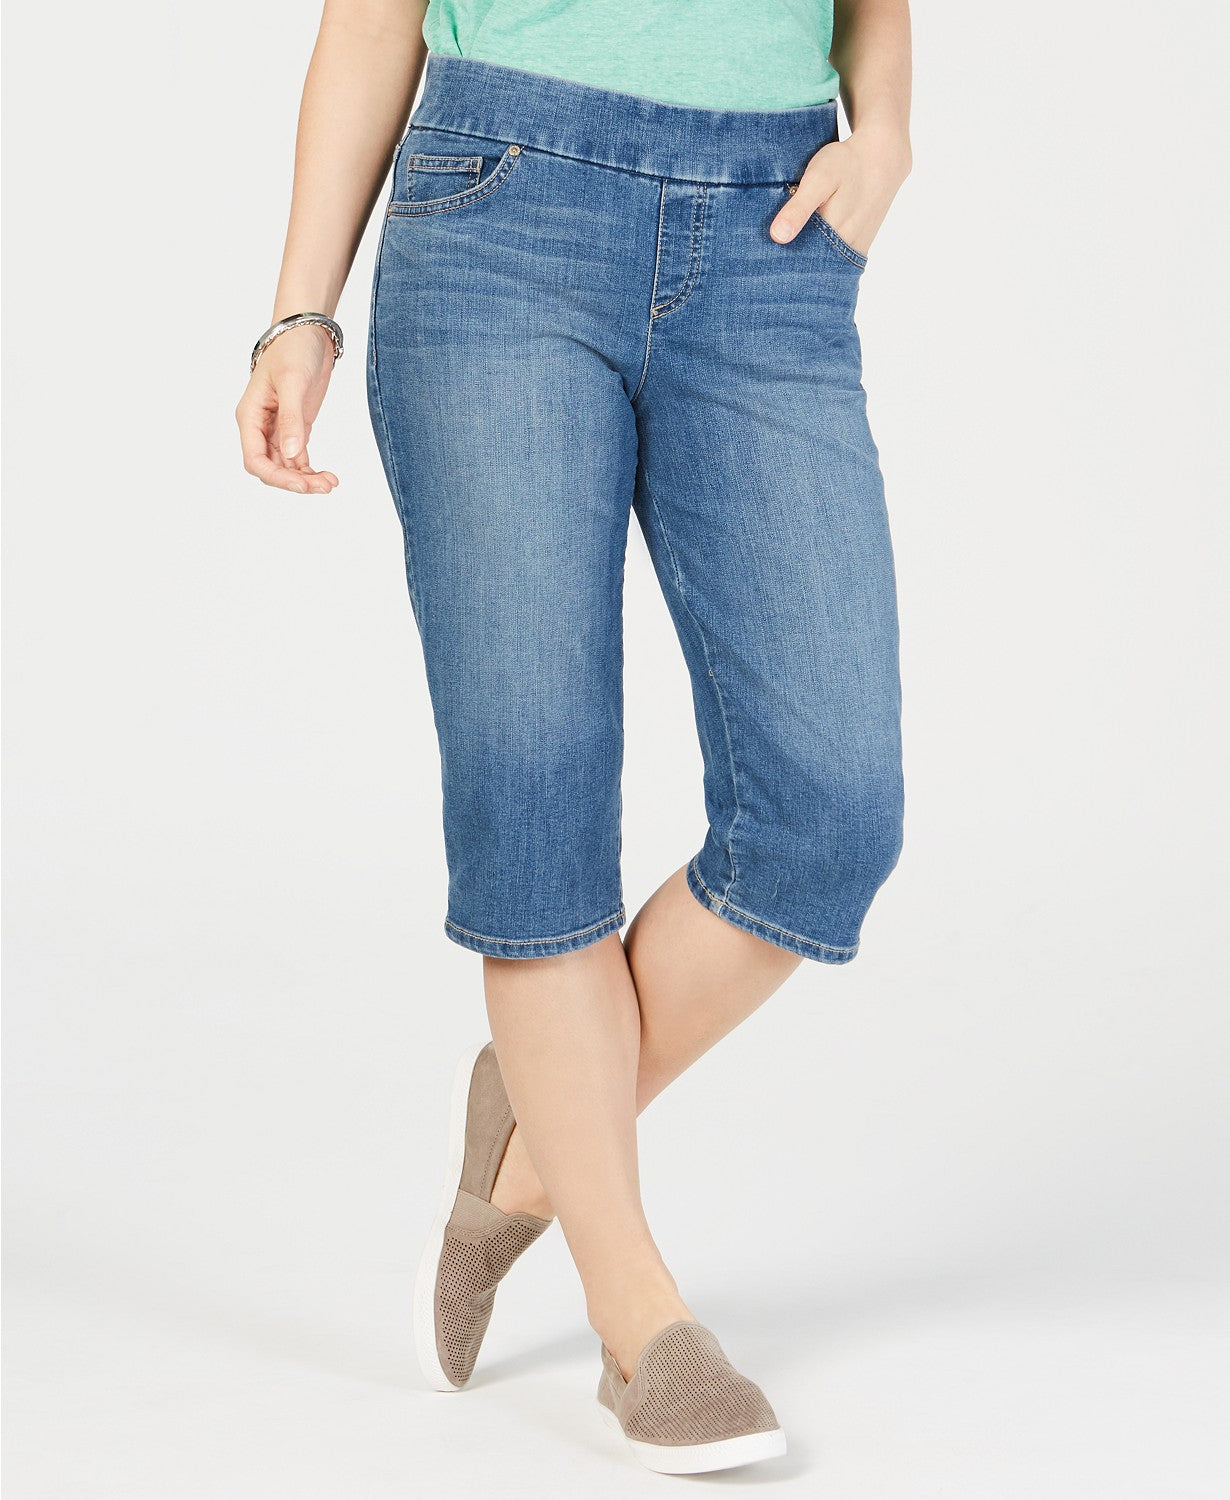 Style & Co Avery Pull-on Skimmer Jeans